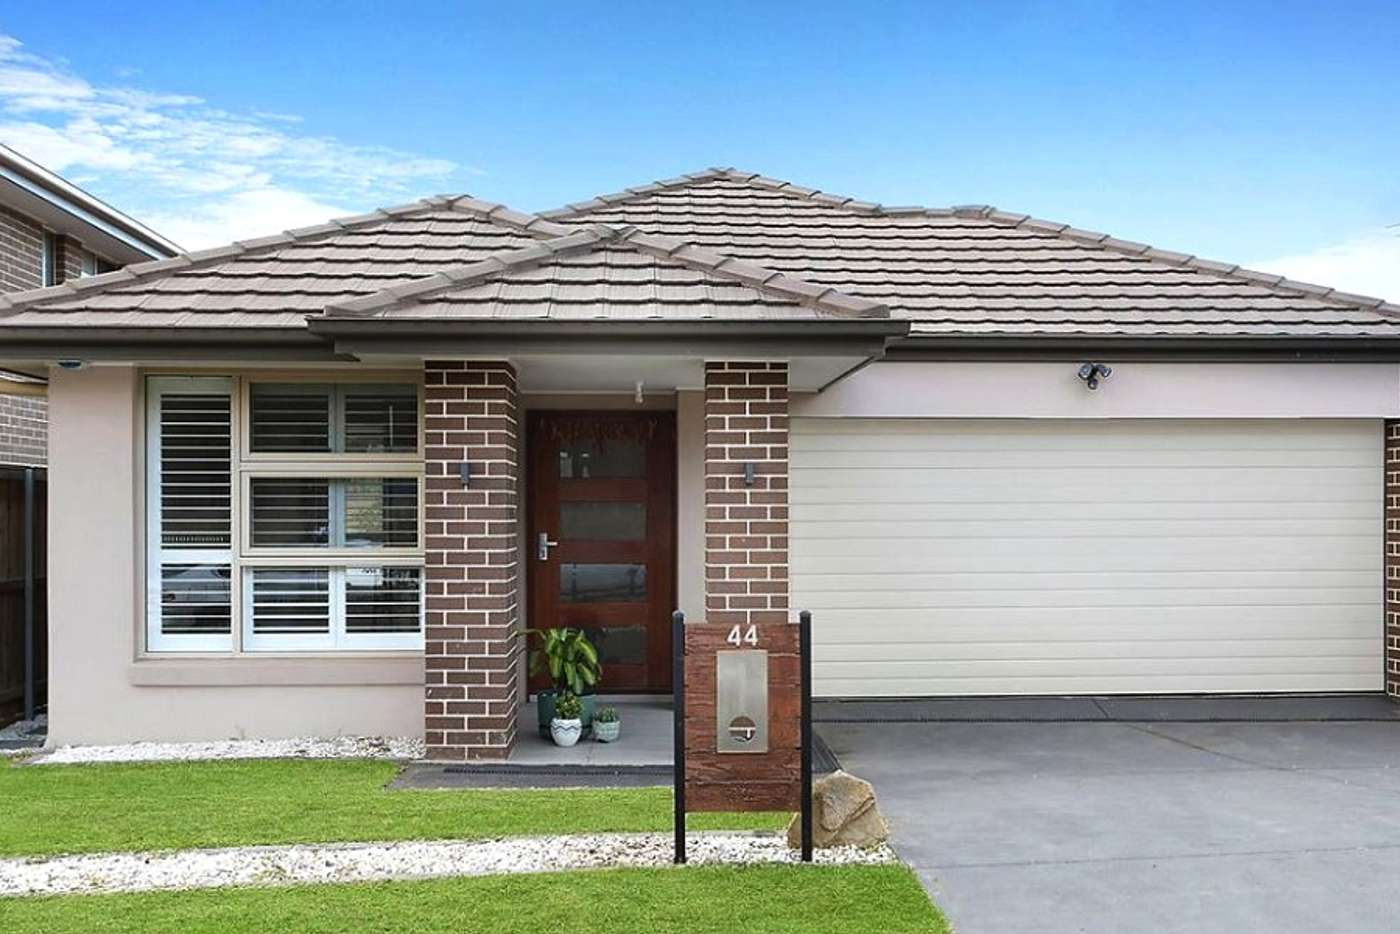 Main view of Homely house listing, 44 Schoffel street, Riverstone NSW 2765